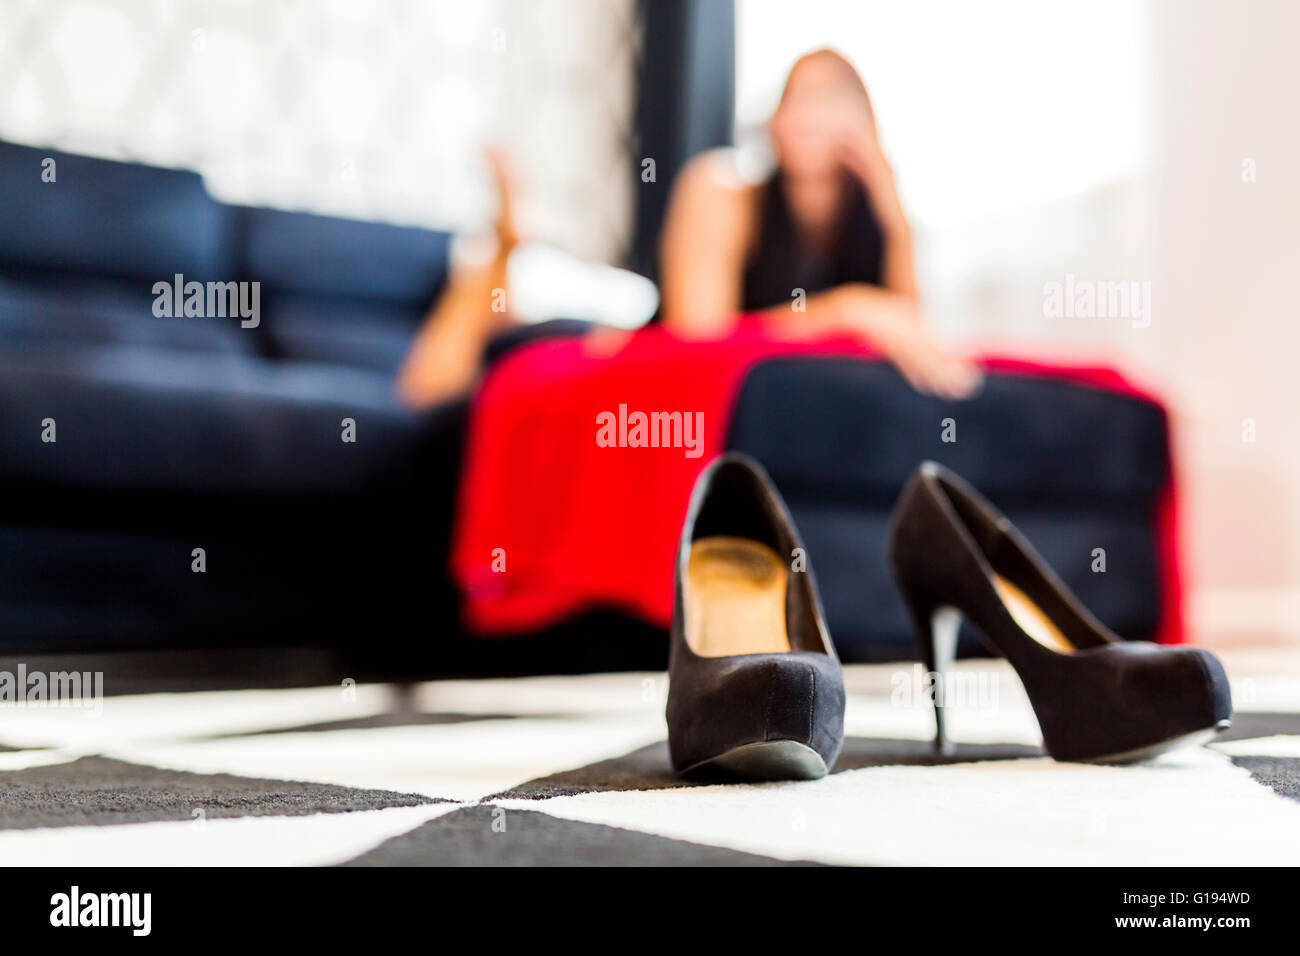 Closeup of high heels shoes in a hotel room and a woman in the background - Stock Image